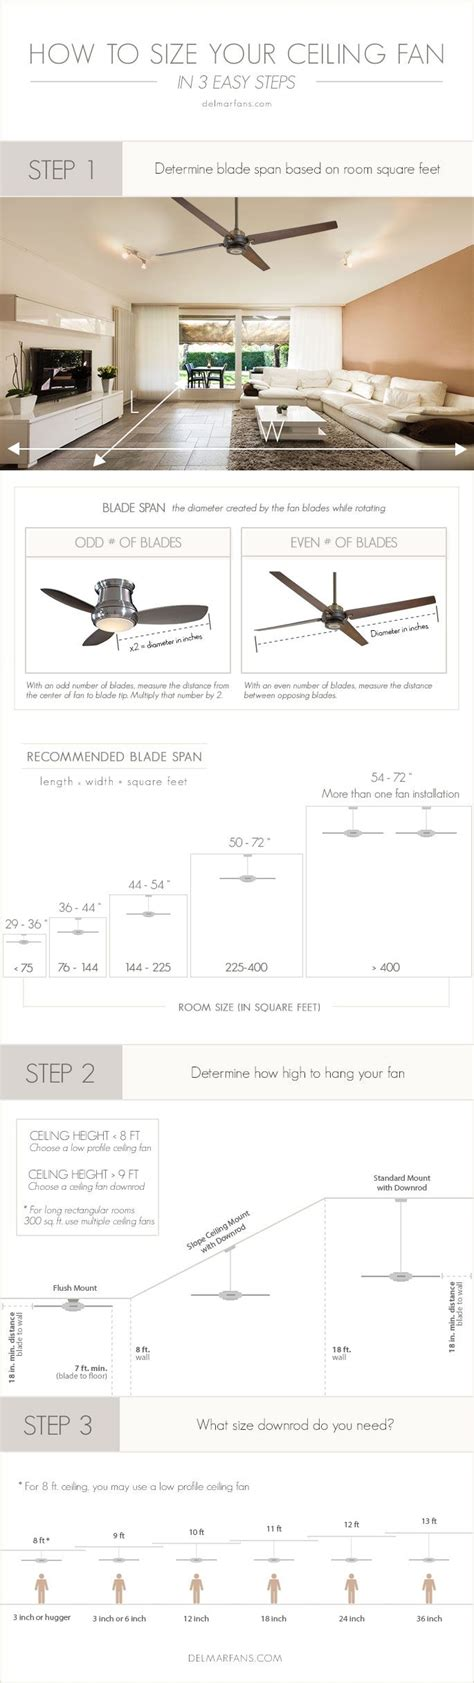 ceiling fan size for bedroom ceiling fan size guide how to measure and size a fan for